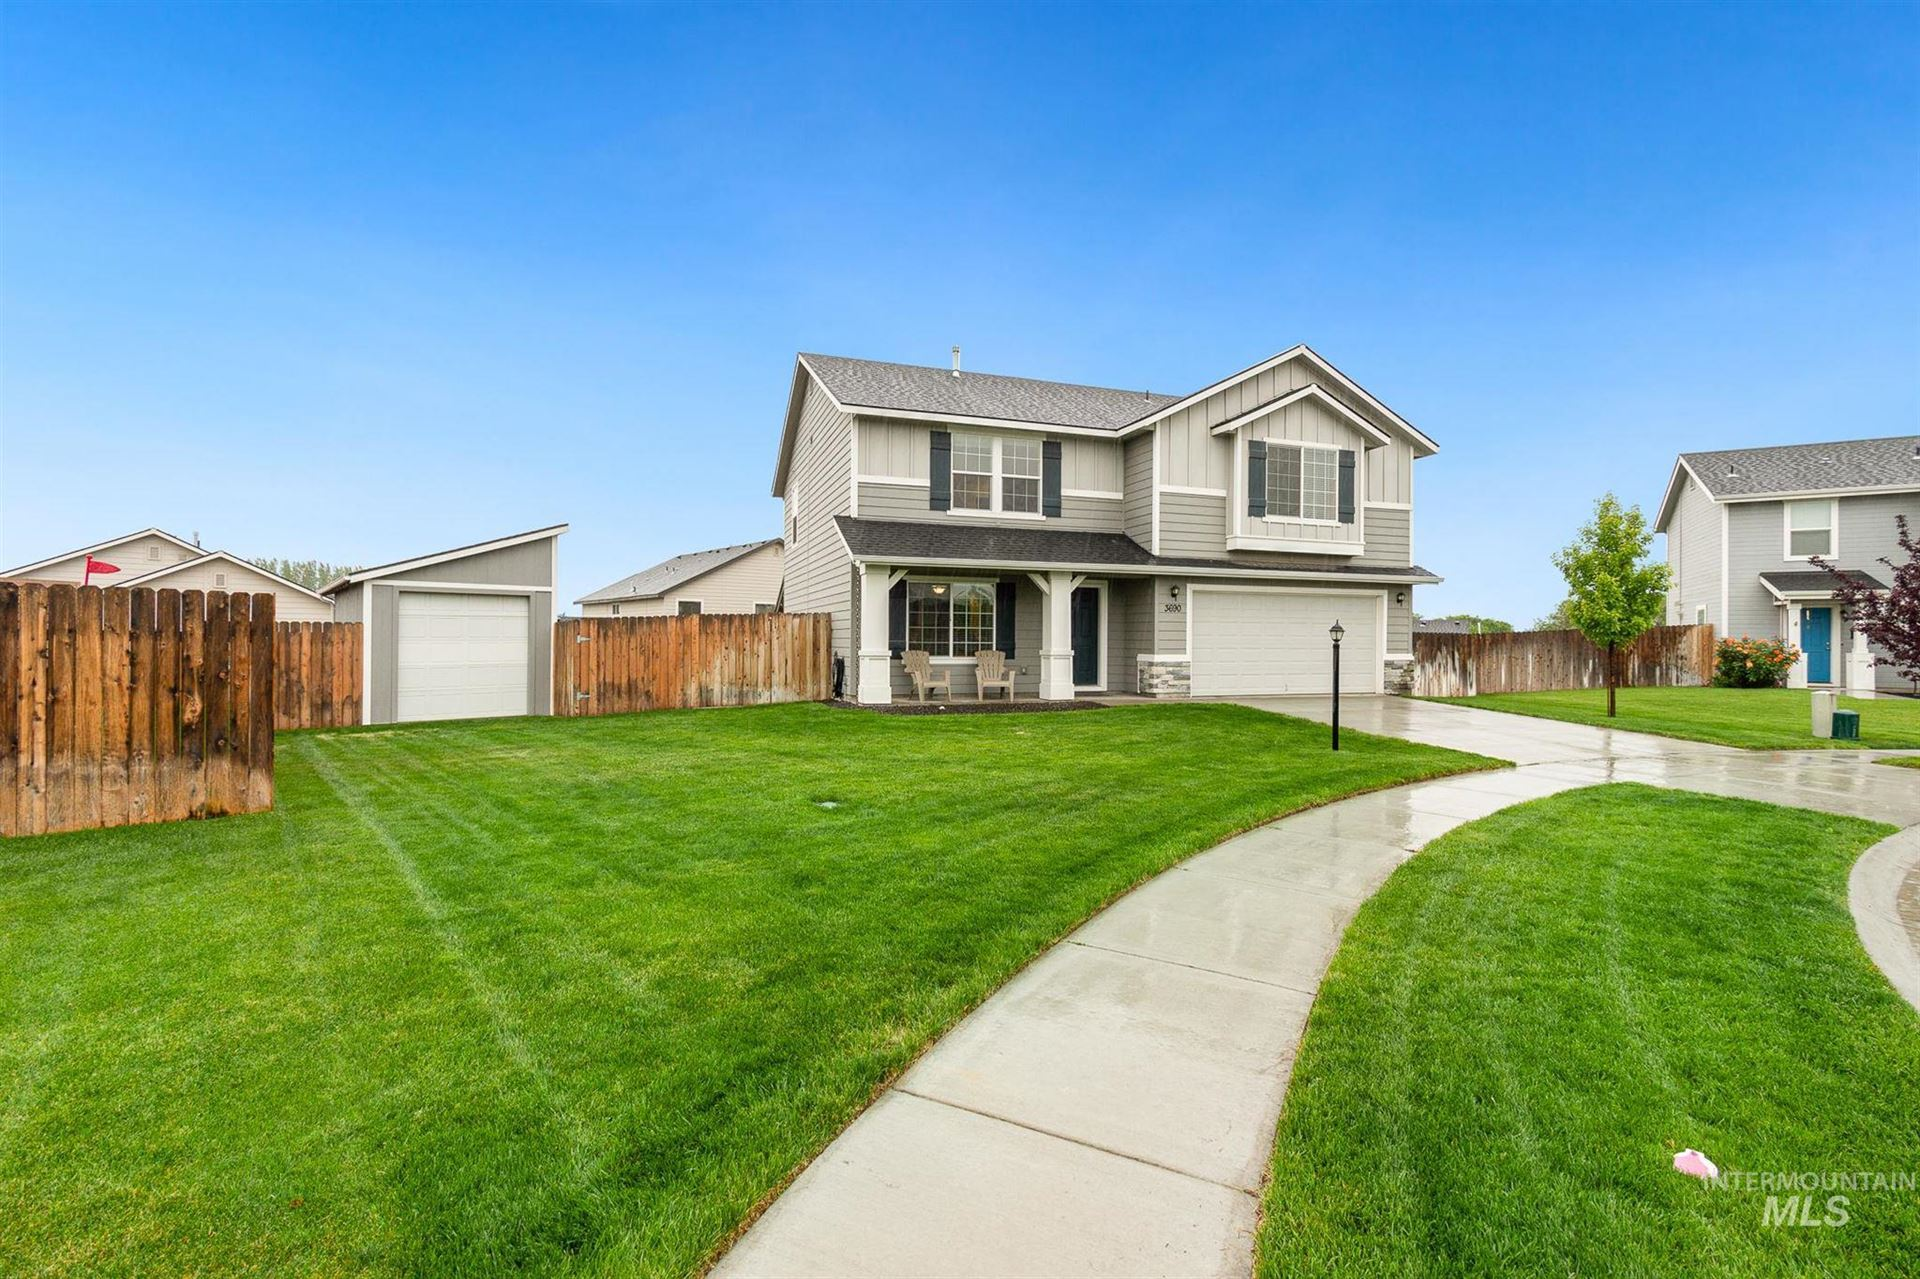 Photo of 3690 S WOOD RIVER AVE, Nampa, ID 83686 (MLS # 98806744)